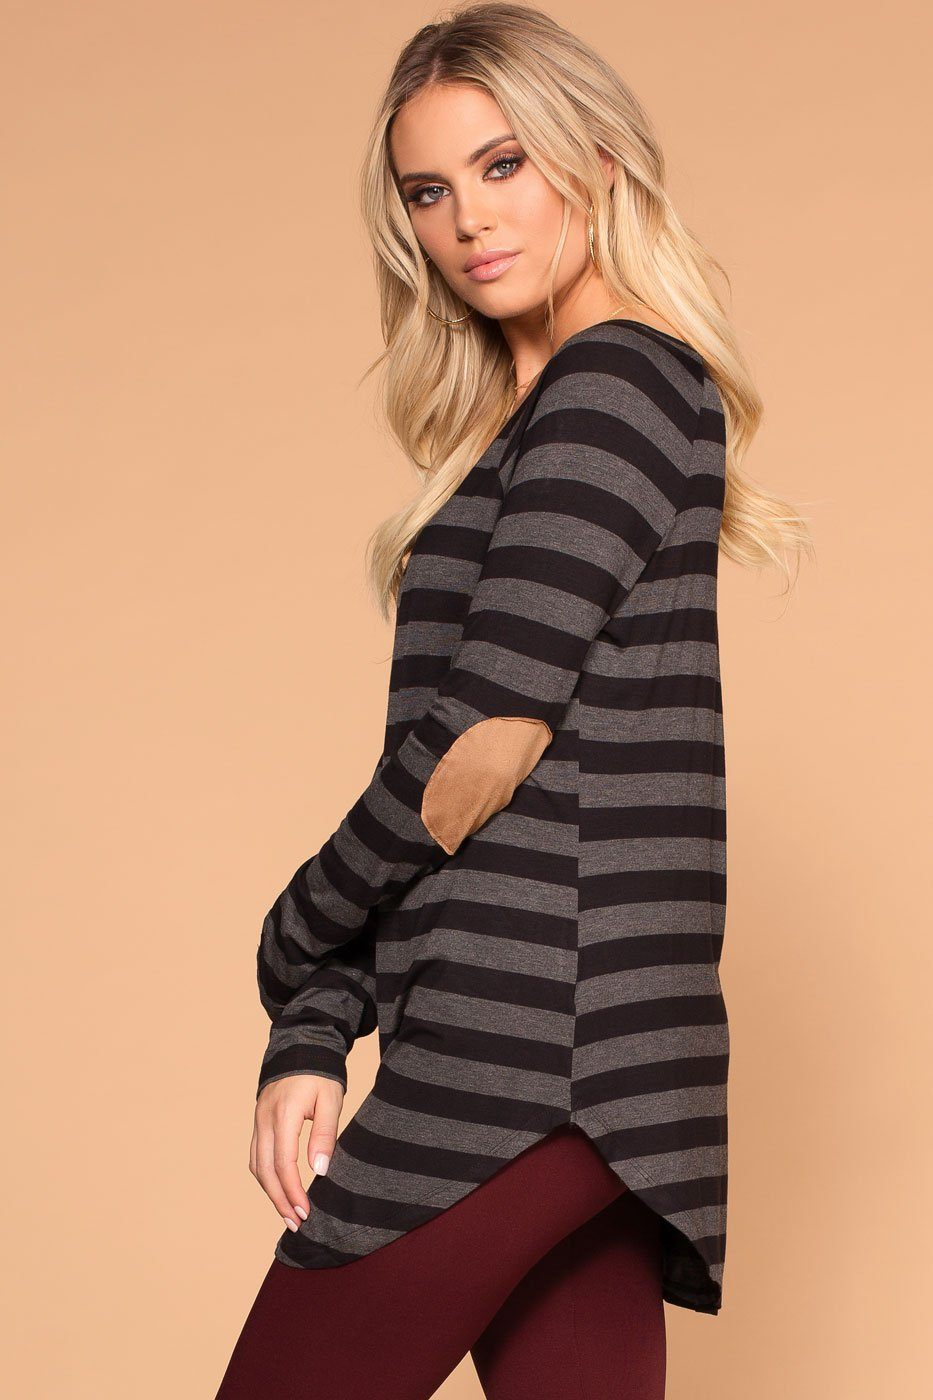 Priceless | Charcoal | Striped Top | Elbow Patch Top | Womens